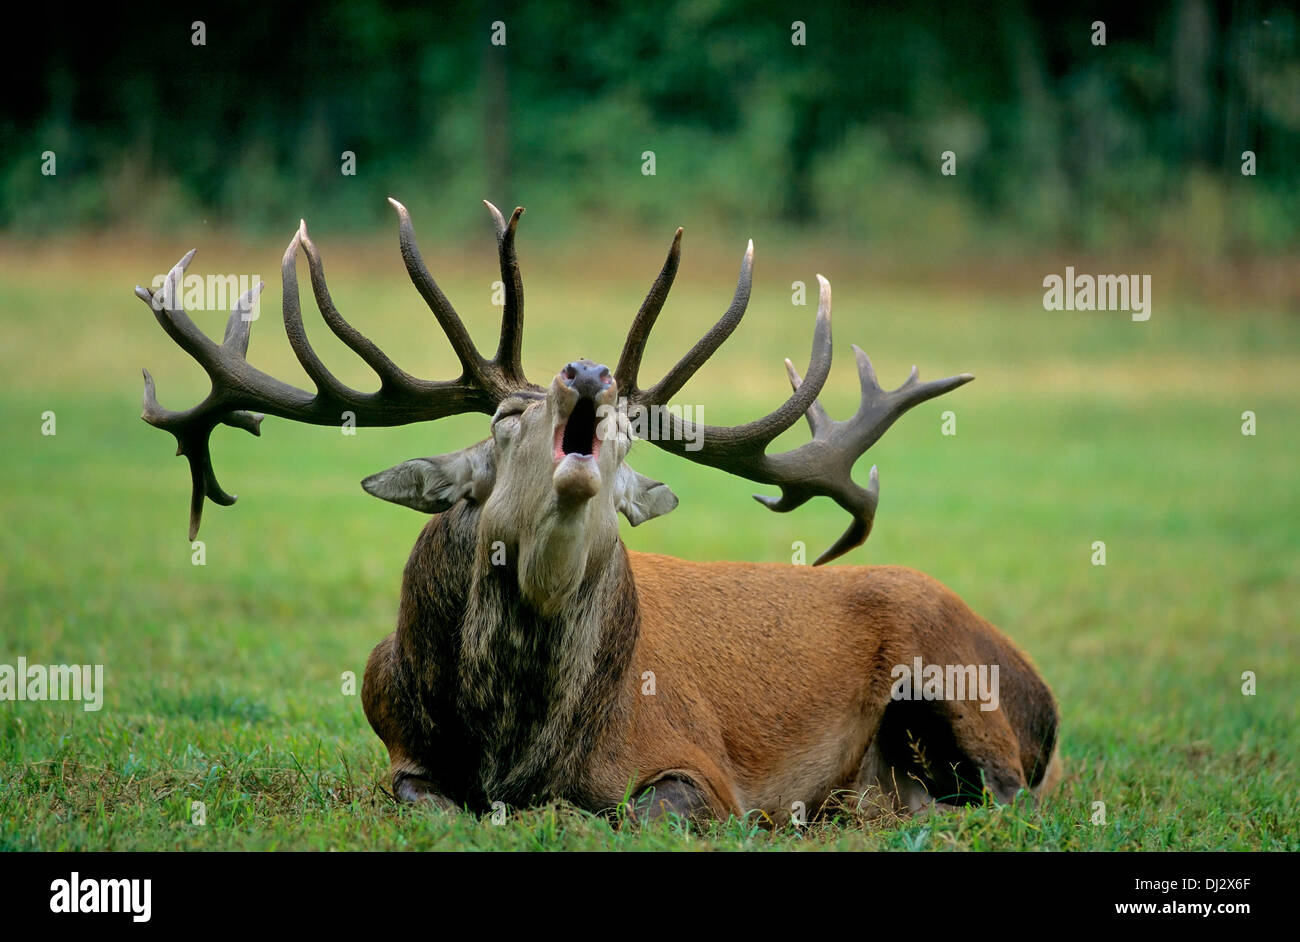 red deer (Cervus elaphus) the rutting season screaming,, Rothirsch (Cervus elaphus), Rothirsch zur Brunftzeit schreiend, - Stock Image